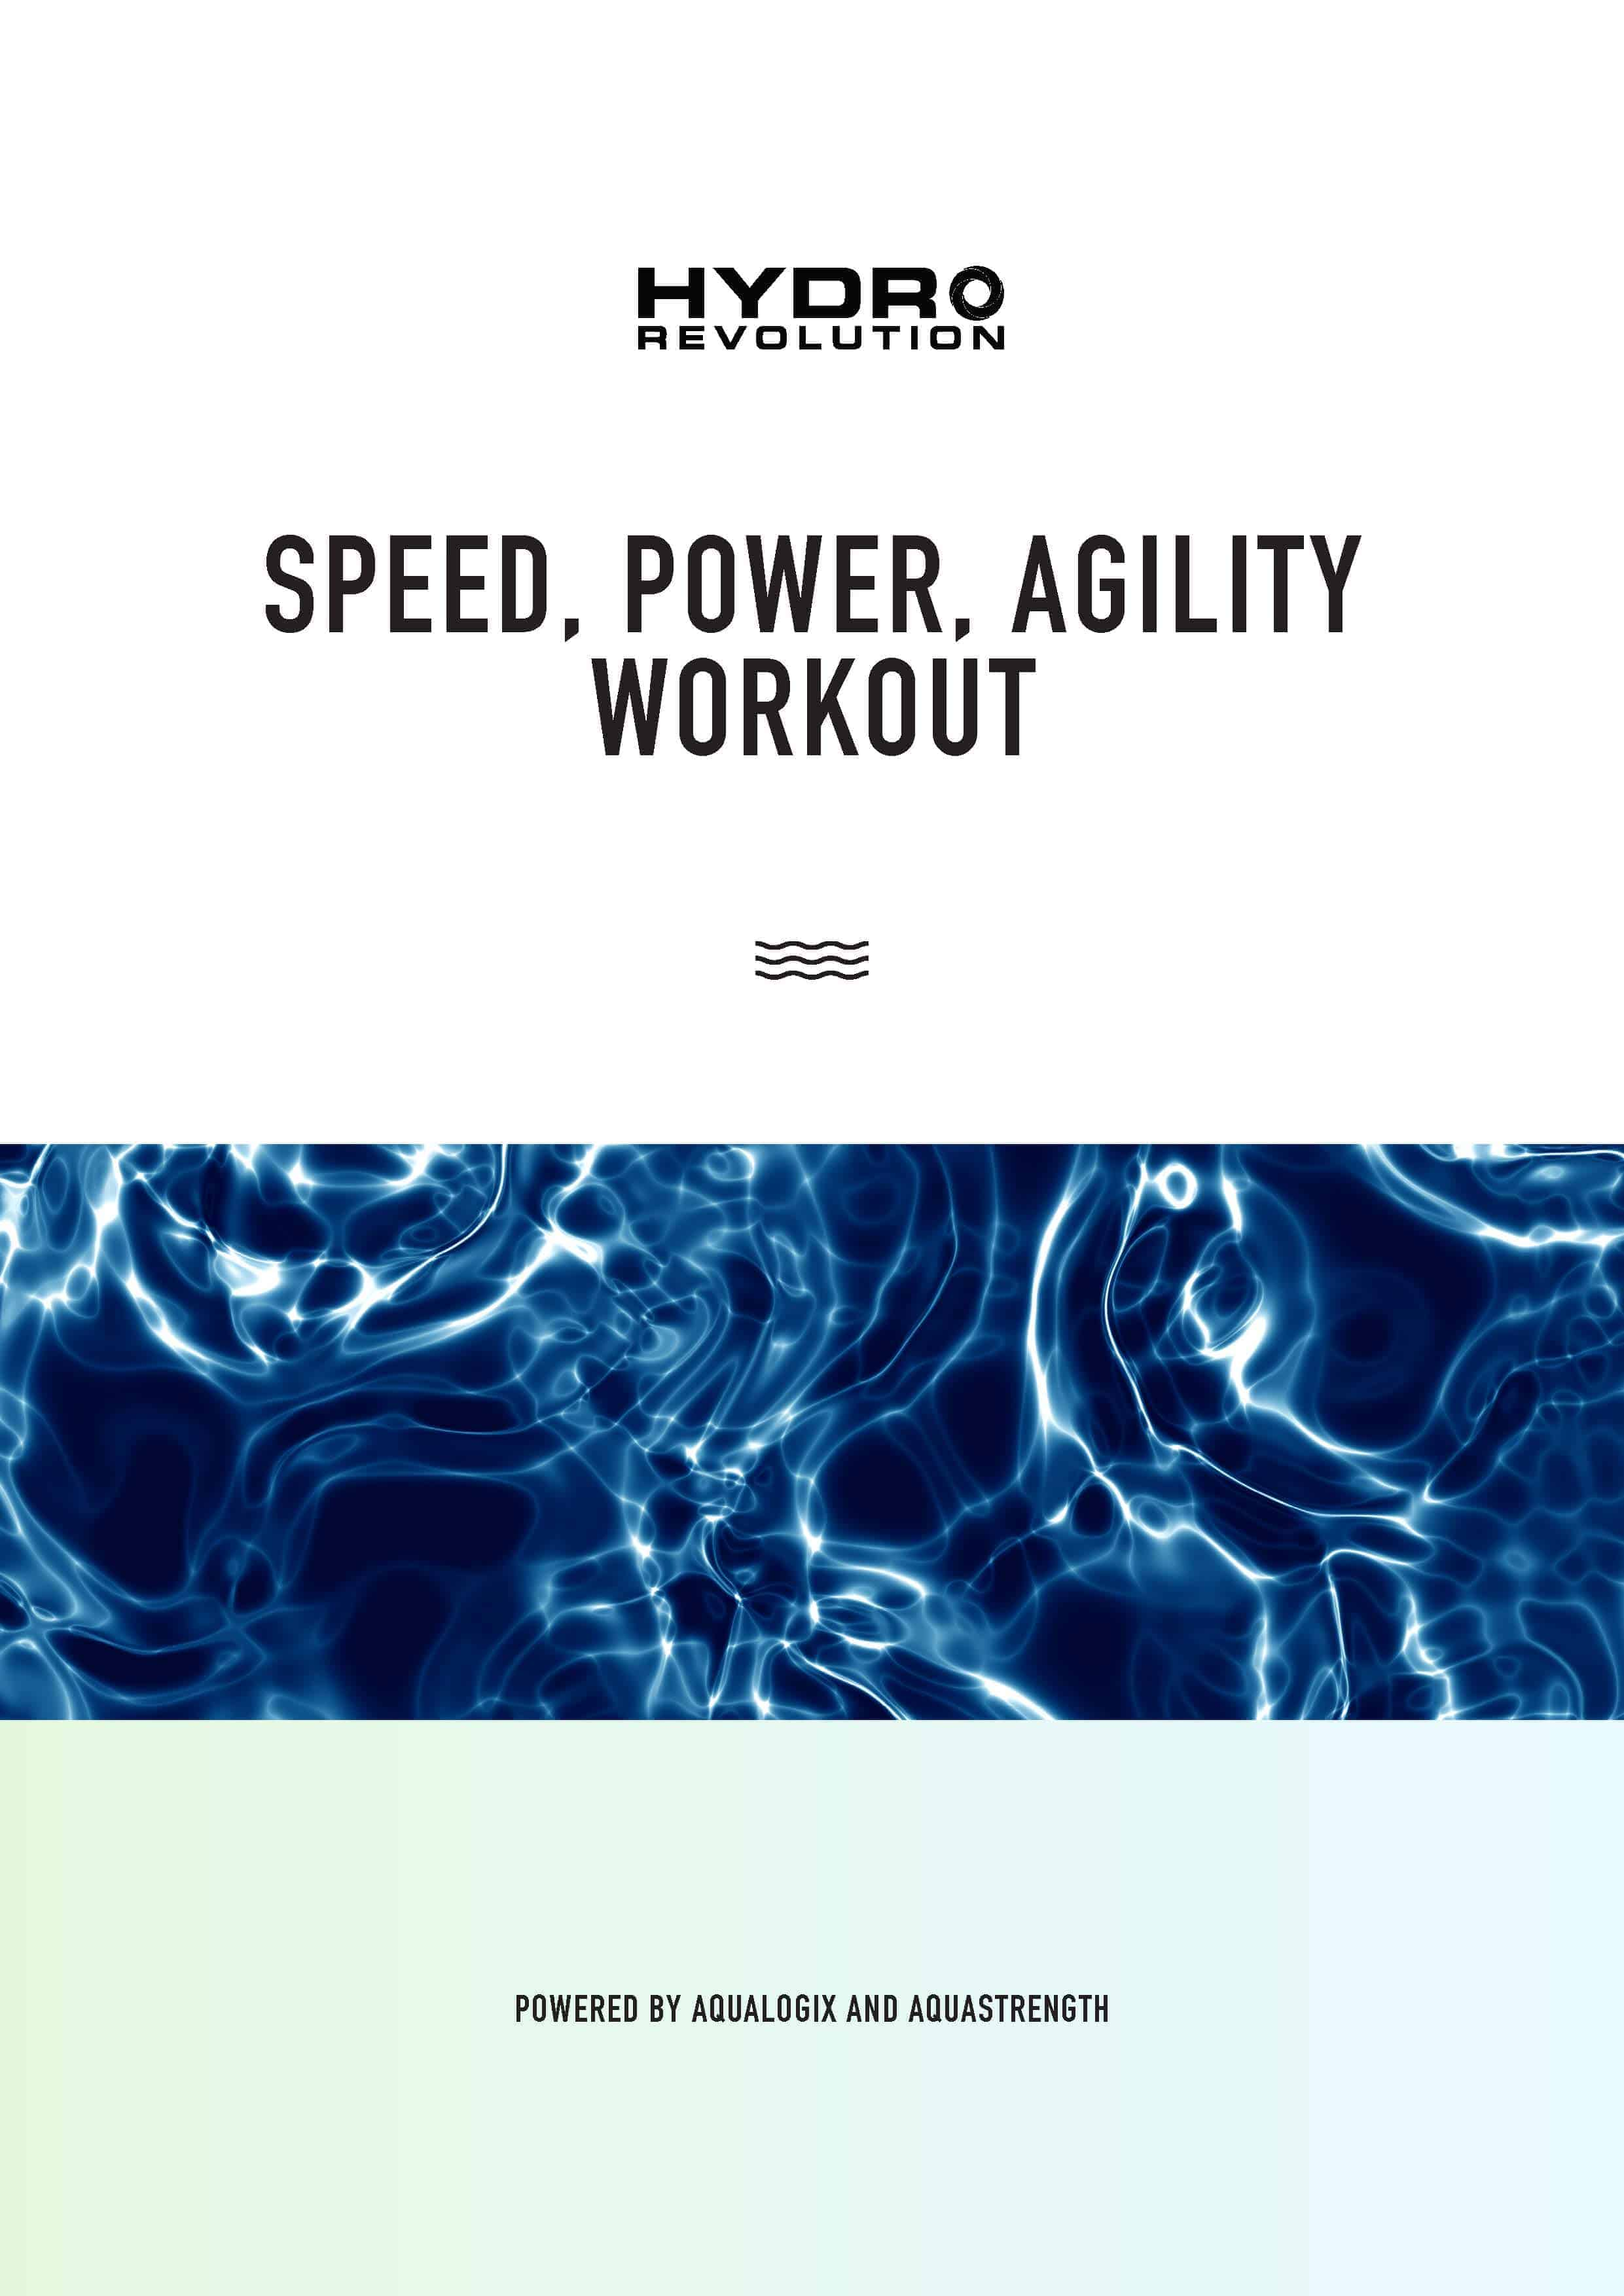 Hydrorevolution Speed, Power, Agility Workout